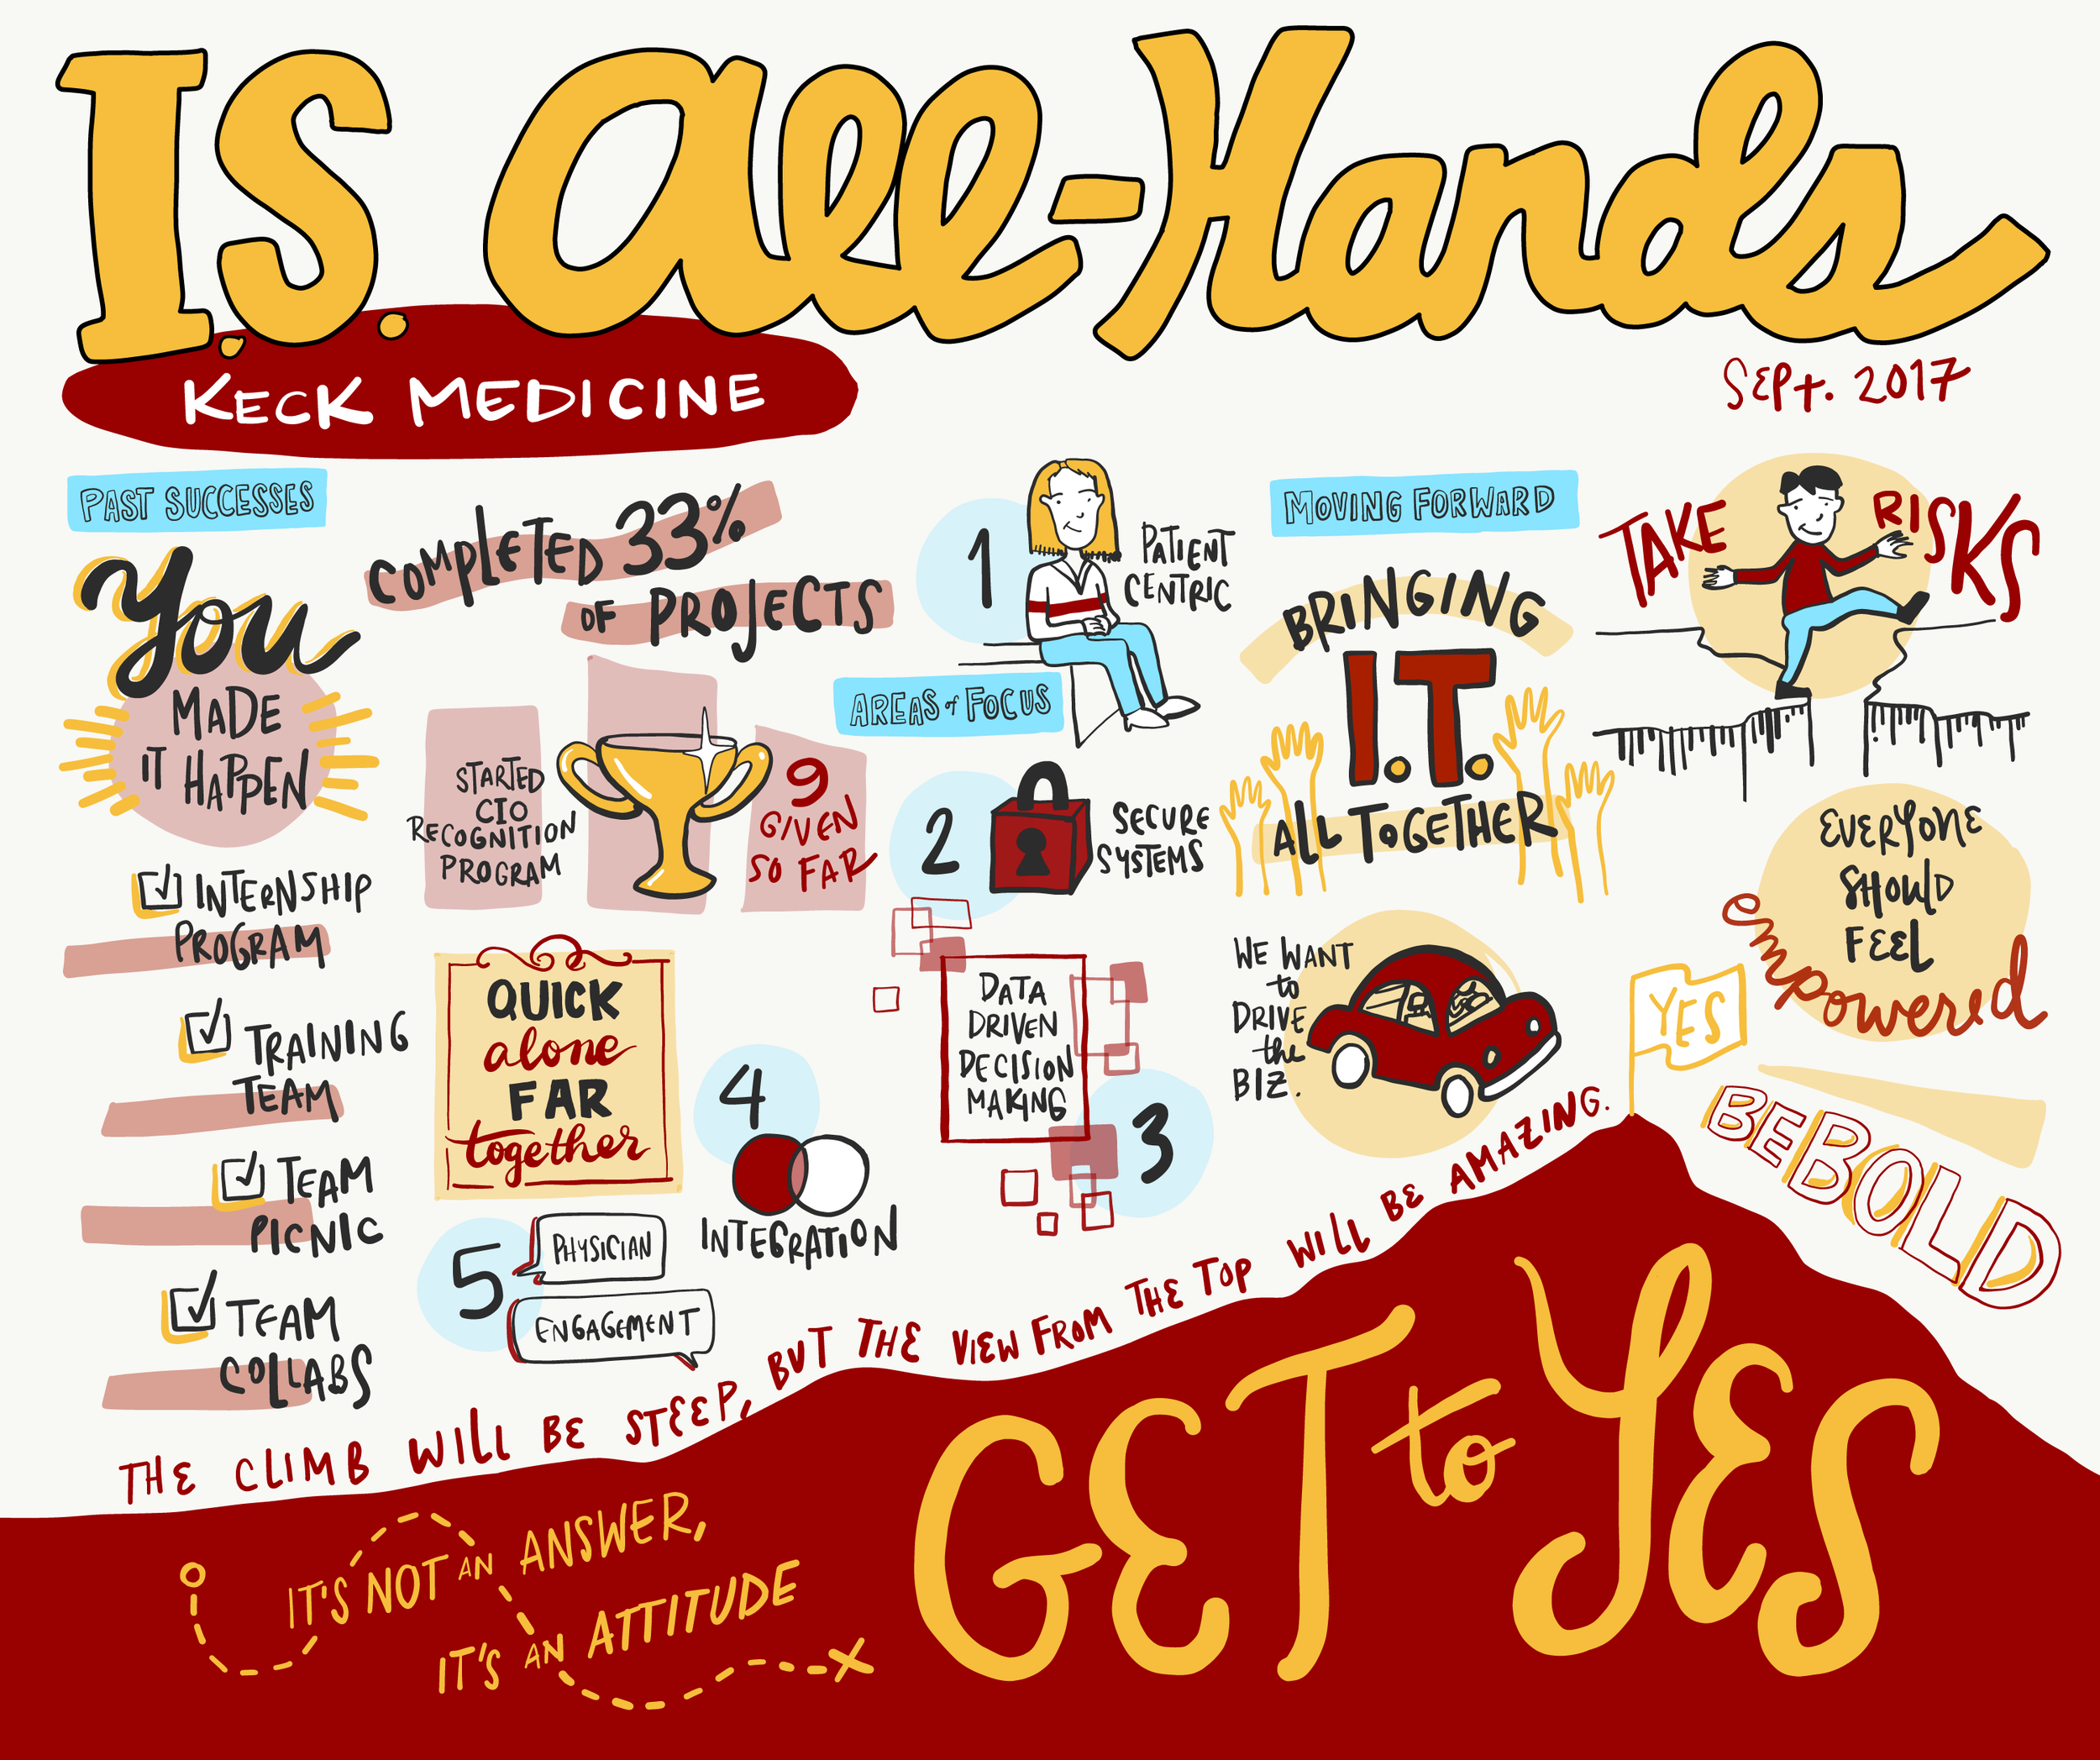 IT Meeting Sketchnotes Infographic by Urban Wild Studio